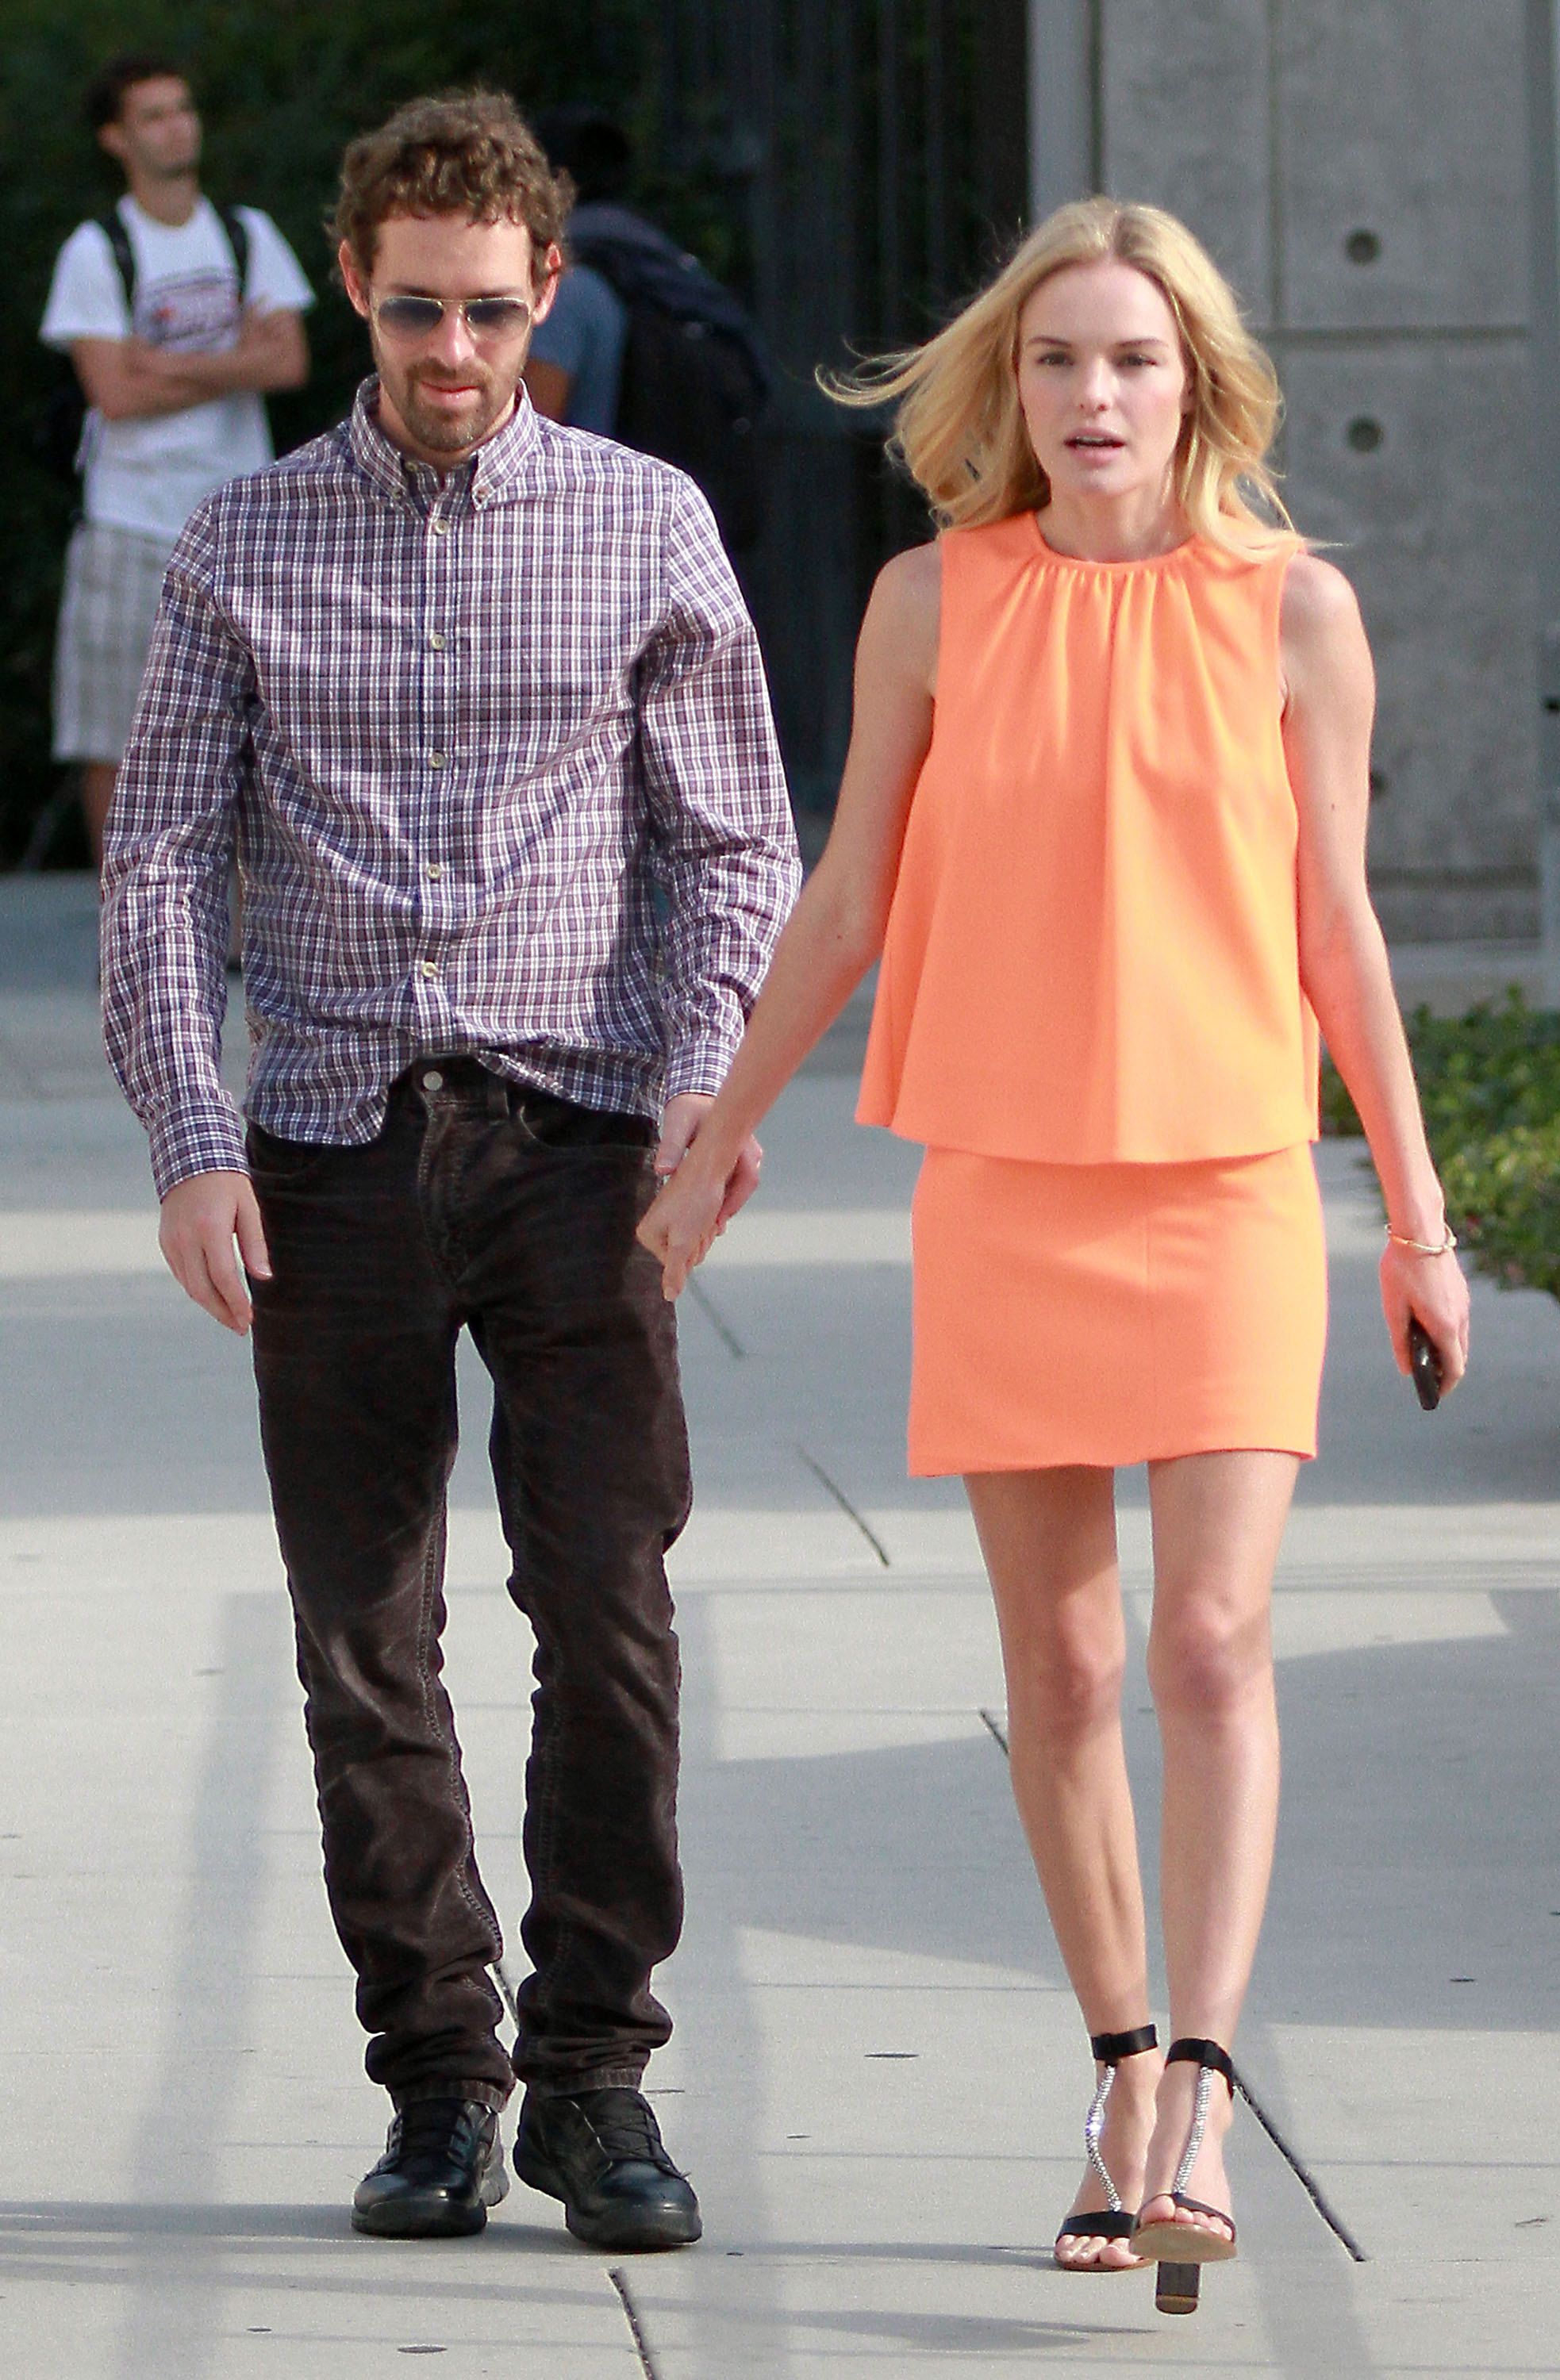 Kate Bosworth and her boyfriend.